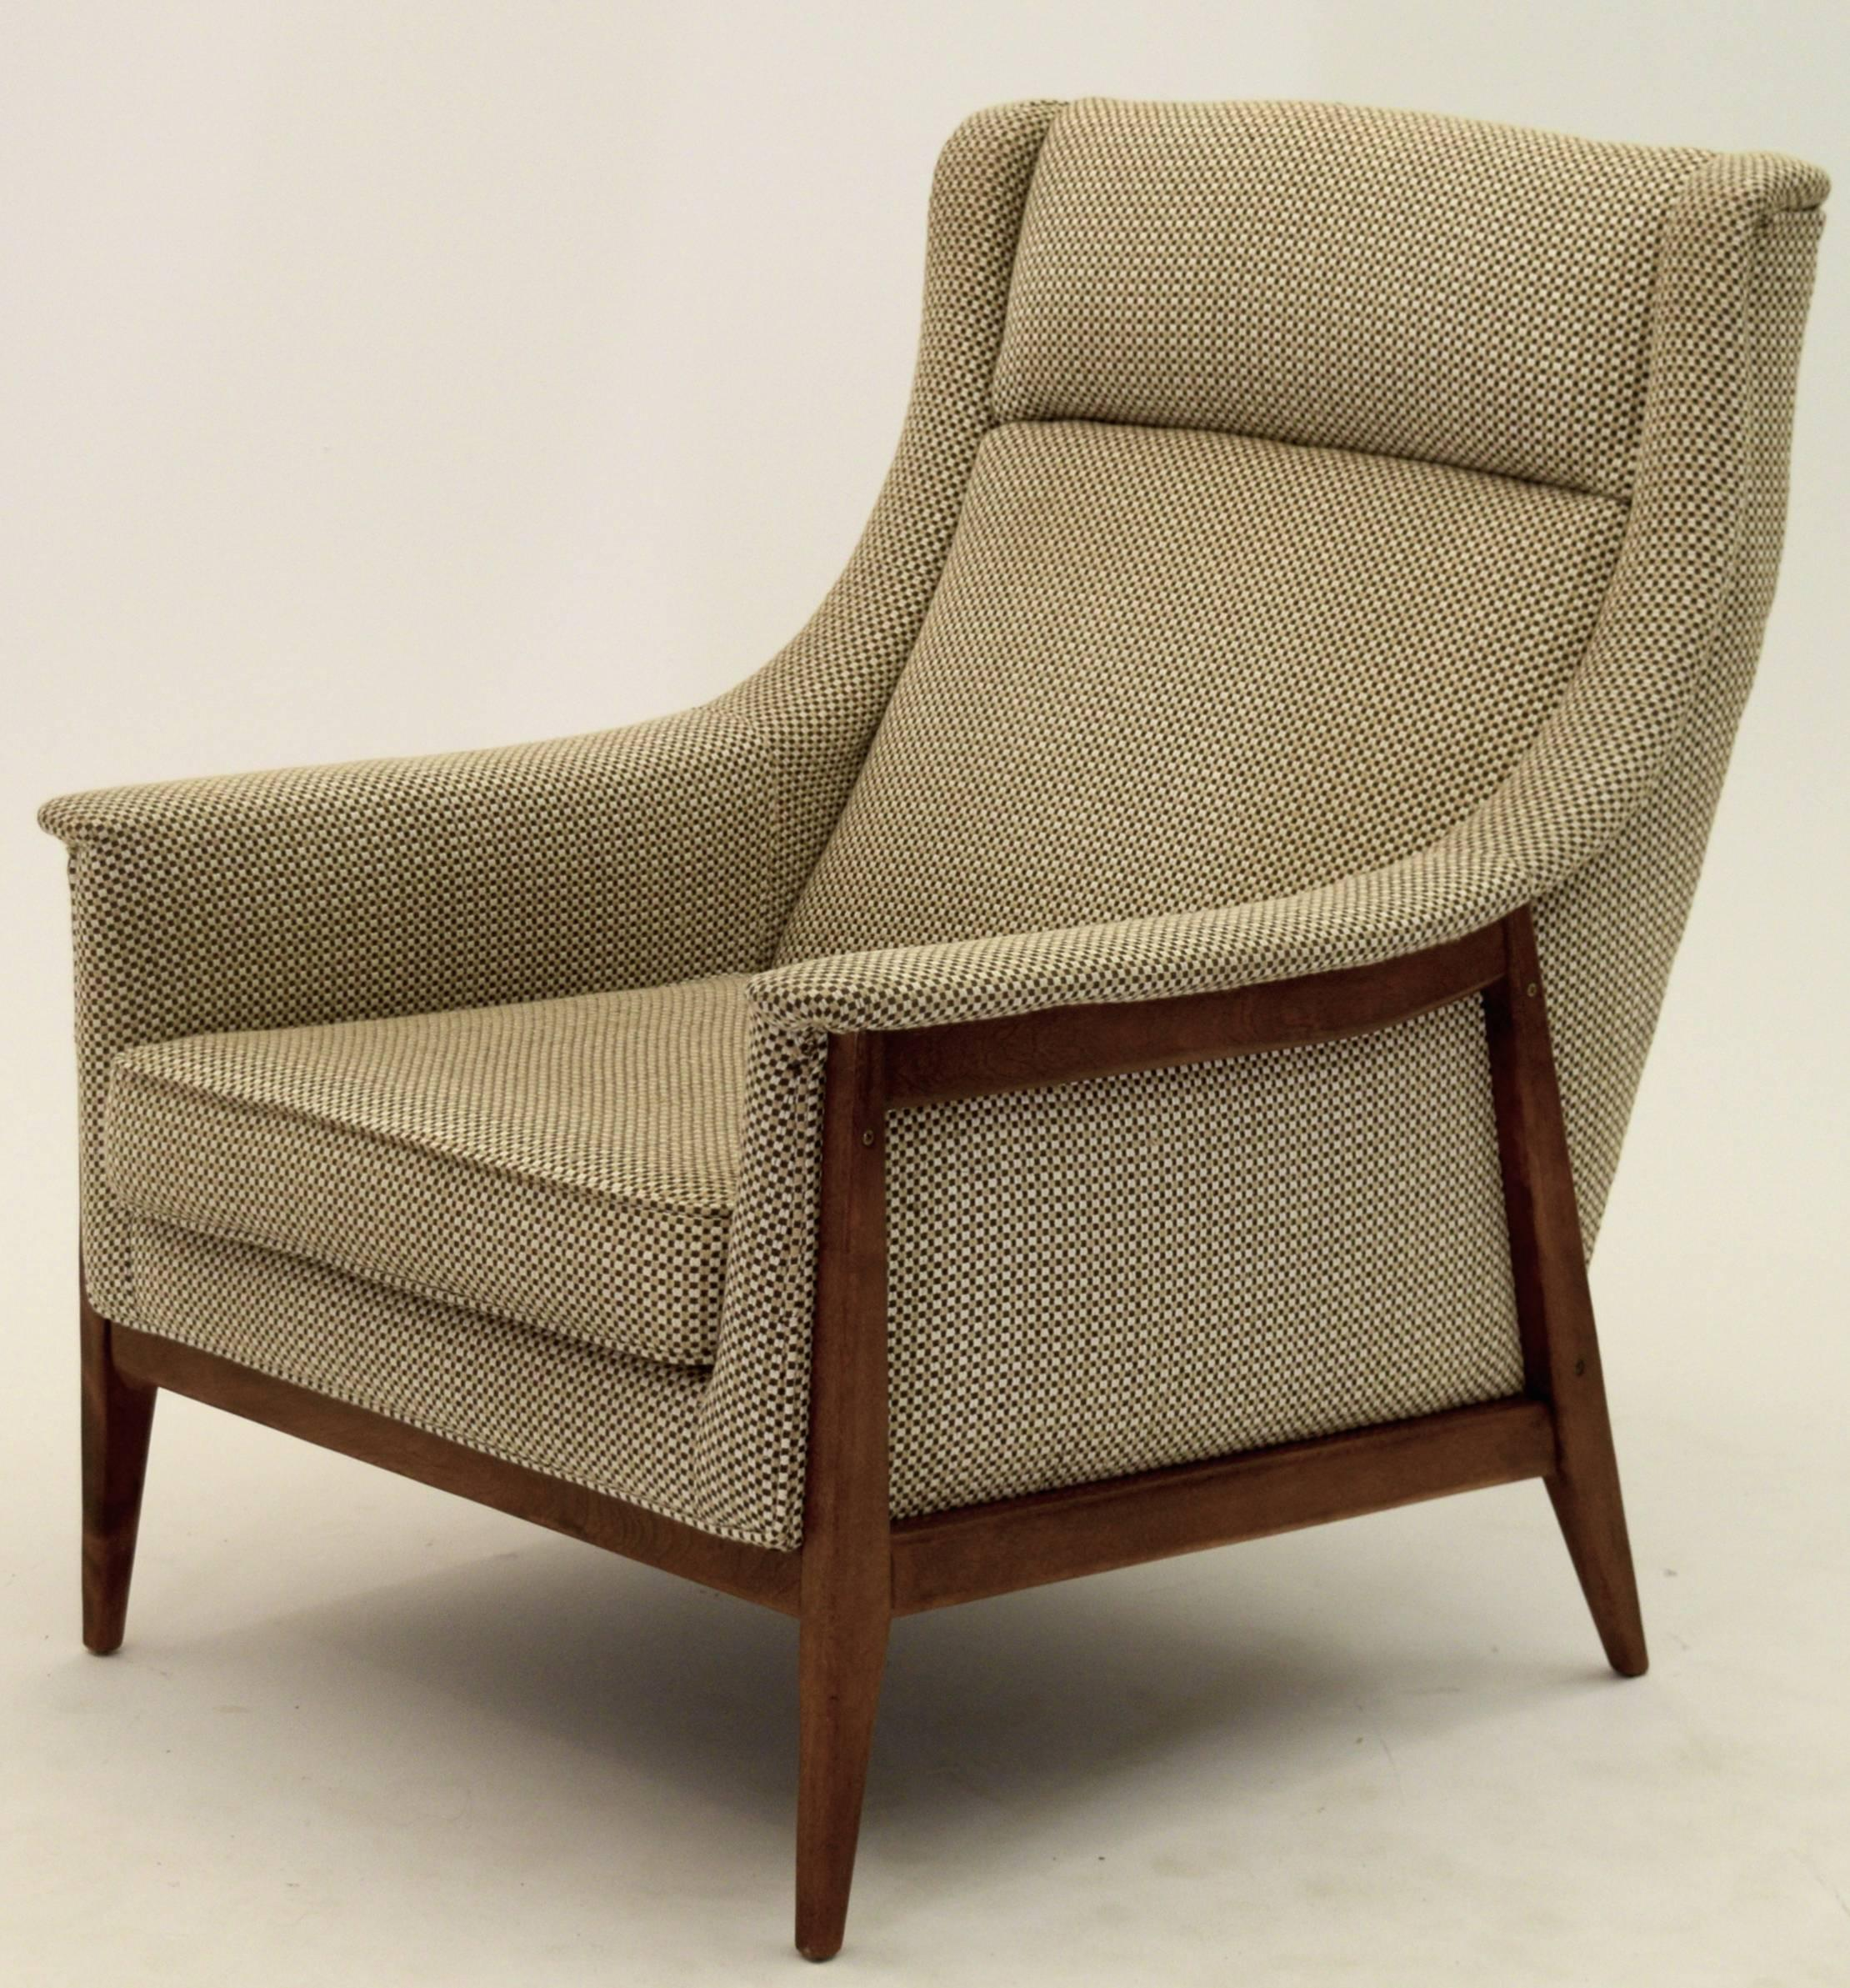 exquisite armchair and ottoman by selig in original cotton felt 2